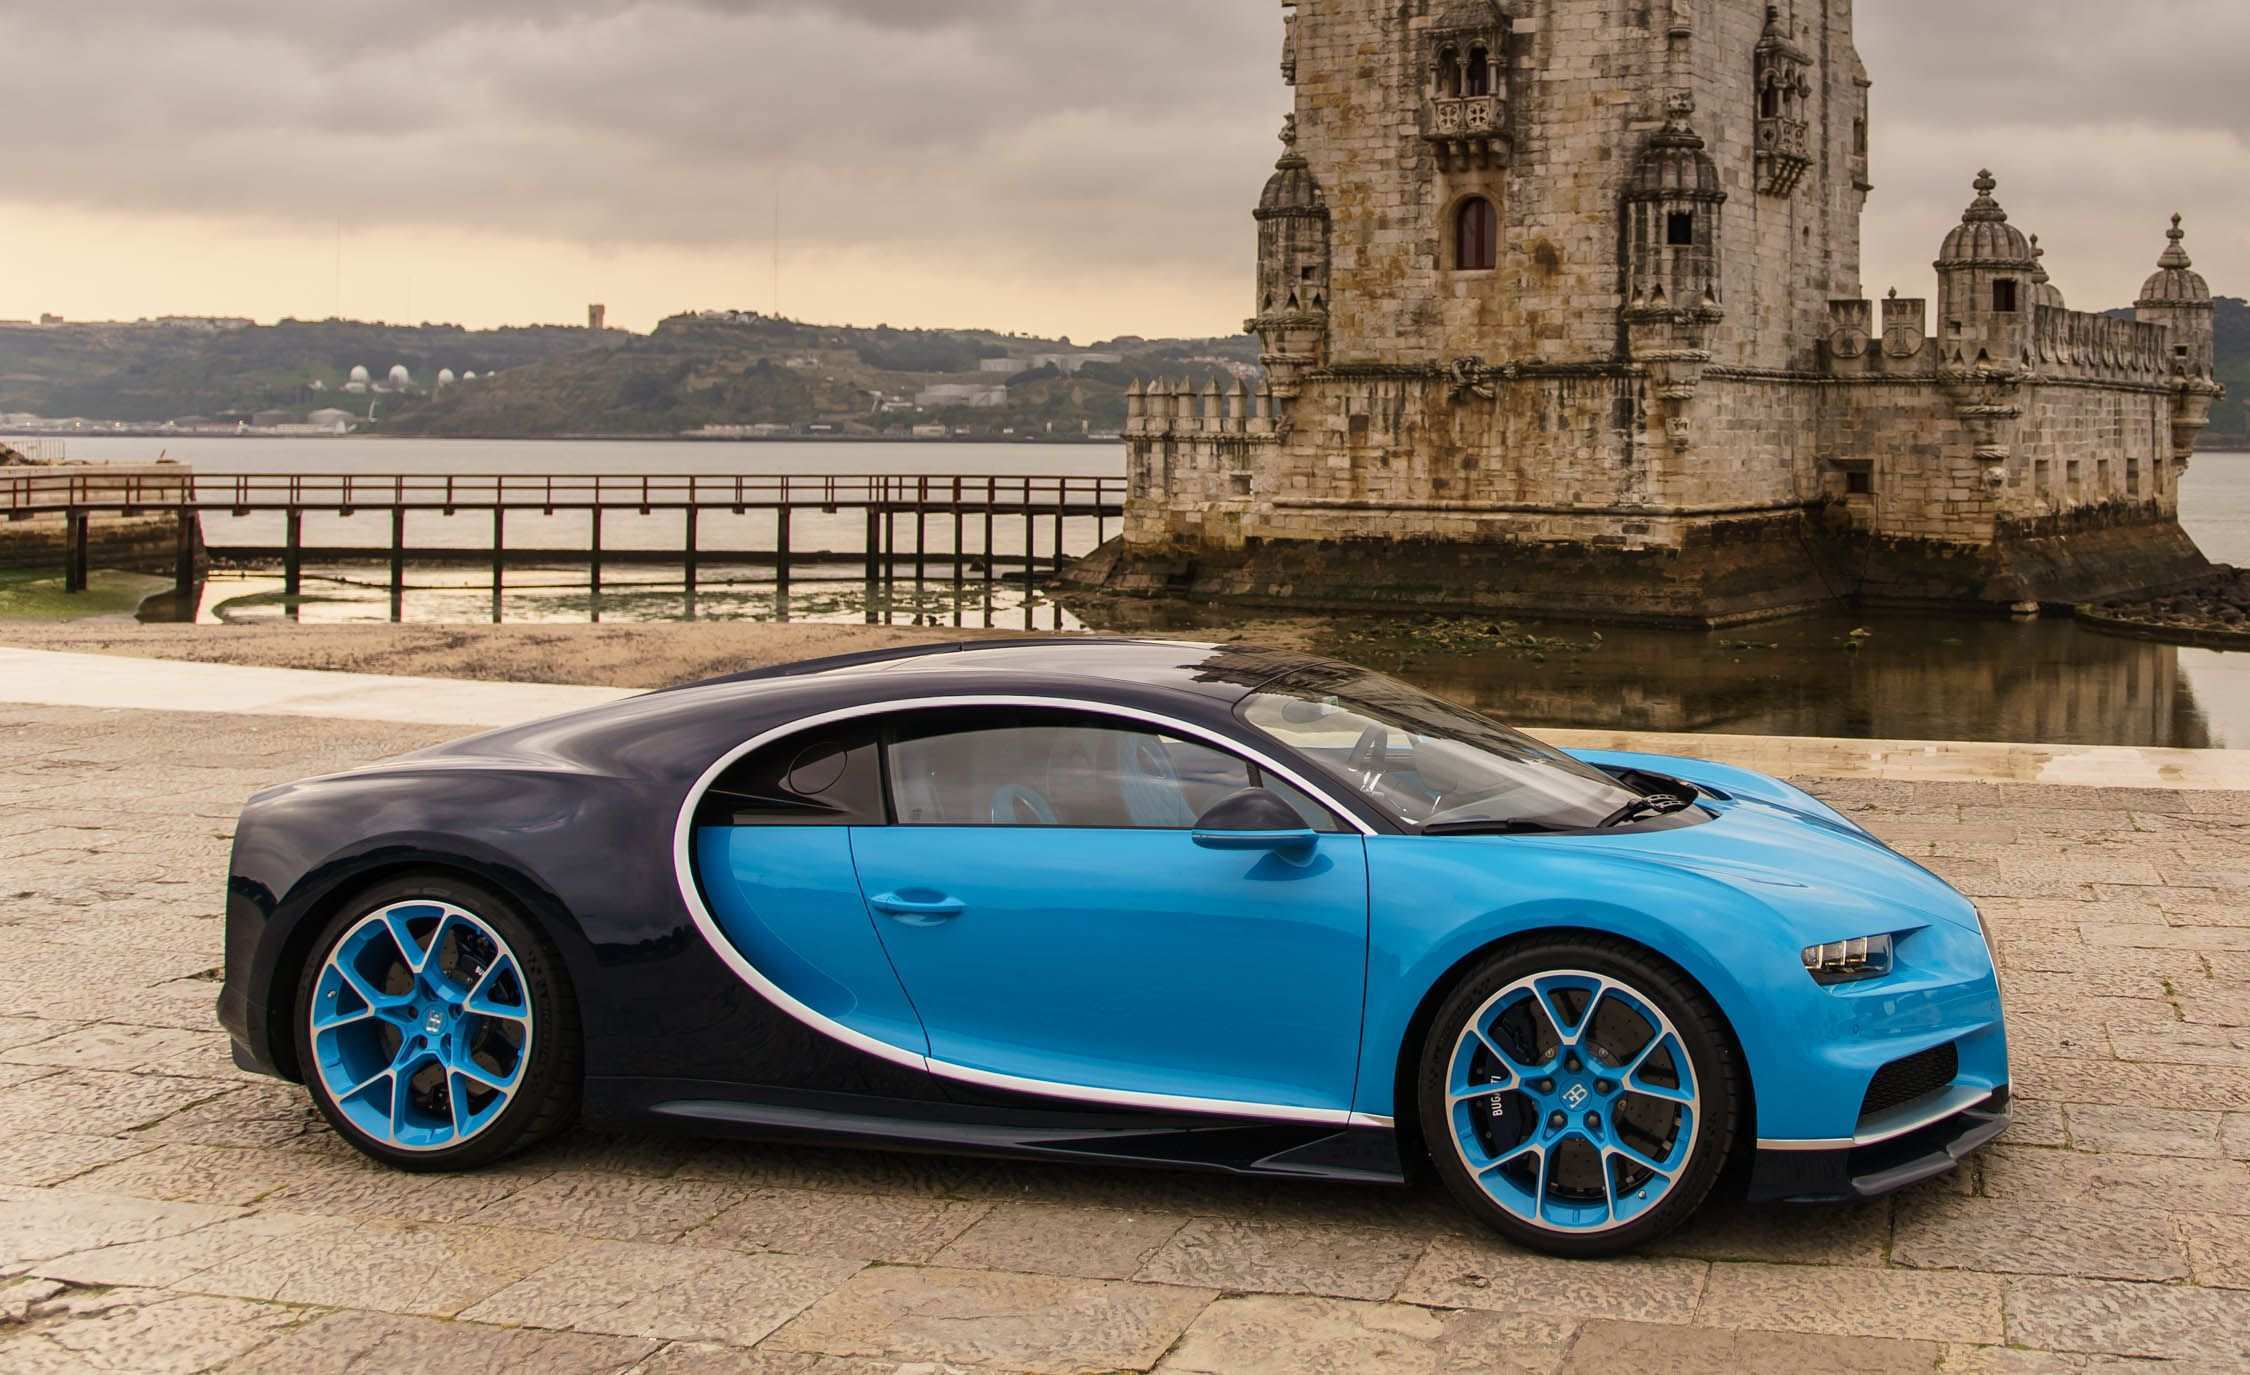 61 Concept of 2019 Bugatti Cost First Drive for 2019 Bugatti Cost